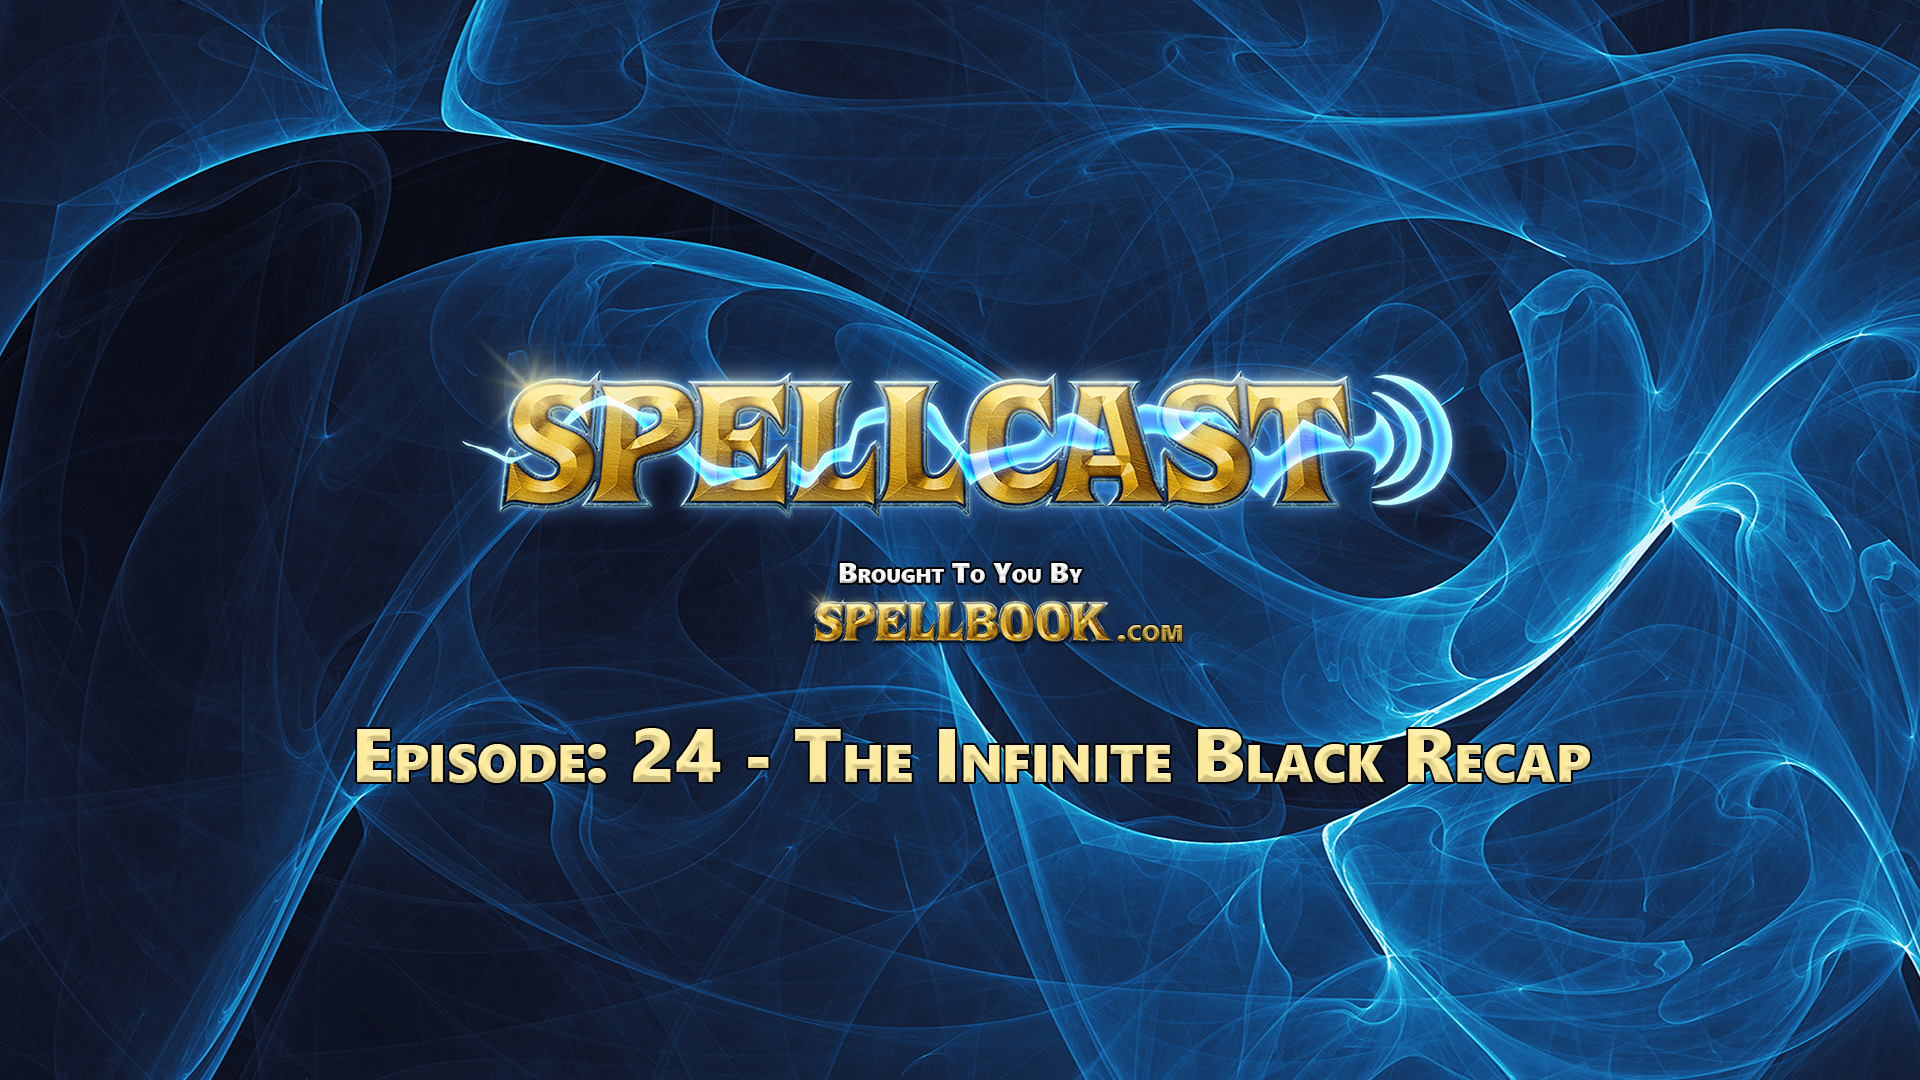 Spellcast Episode: 24 - The Infinite Black Recap